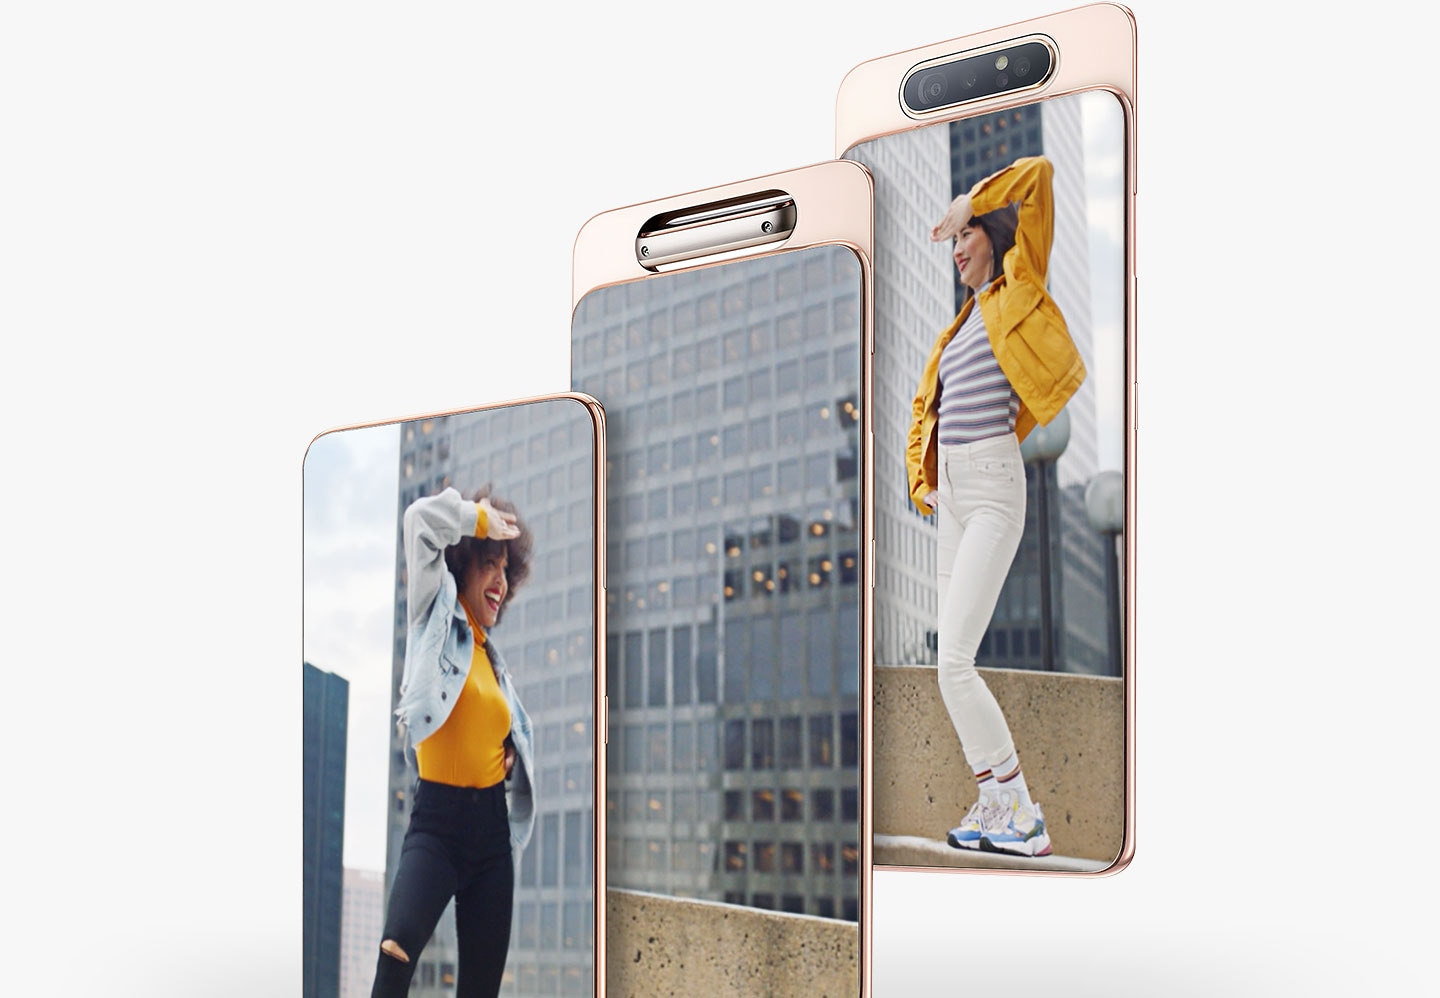 Three photos captured by Galaxy A80's Rotating Camera when it faces the rear to capture a woman dancing, then faces front to capture another woman dancing.